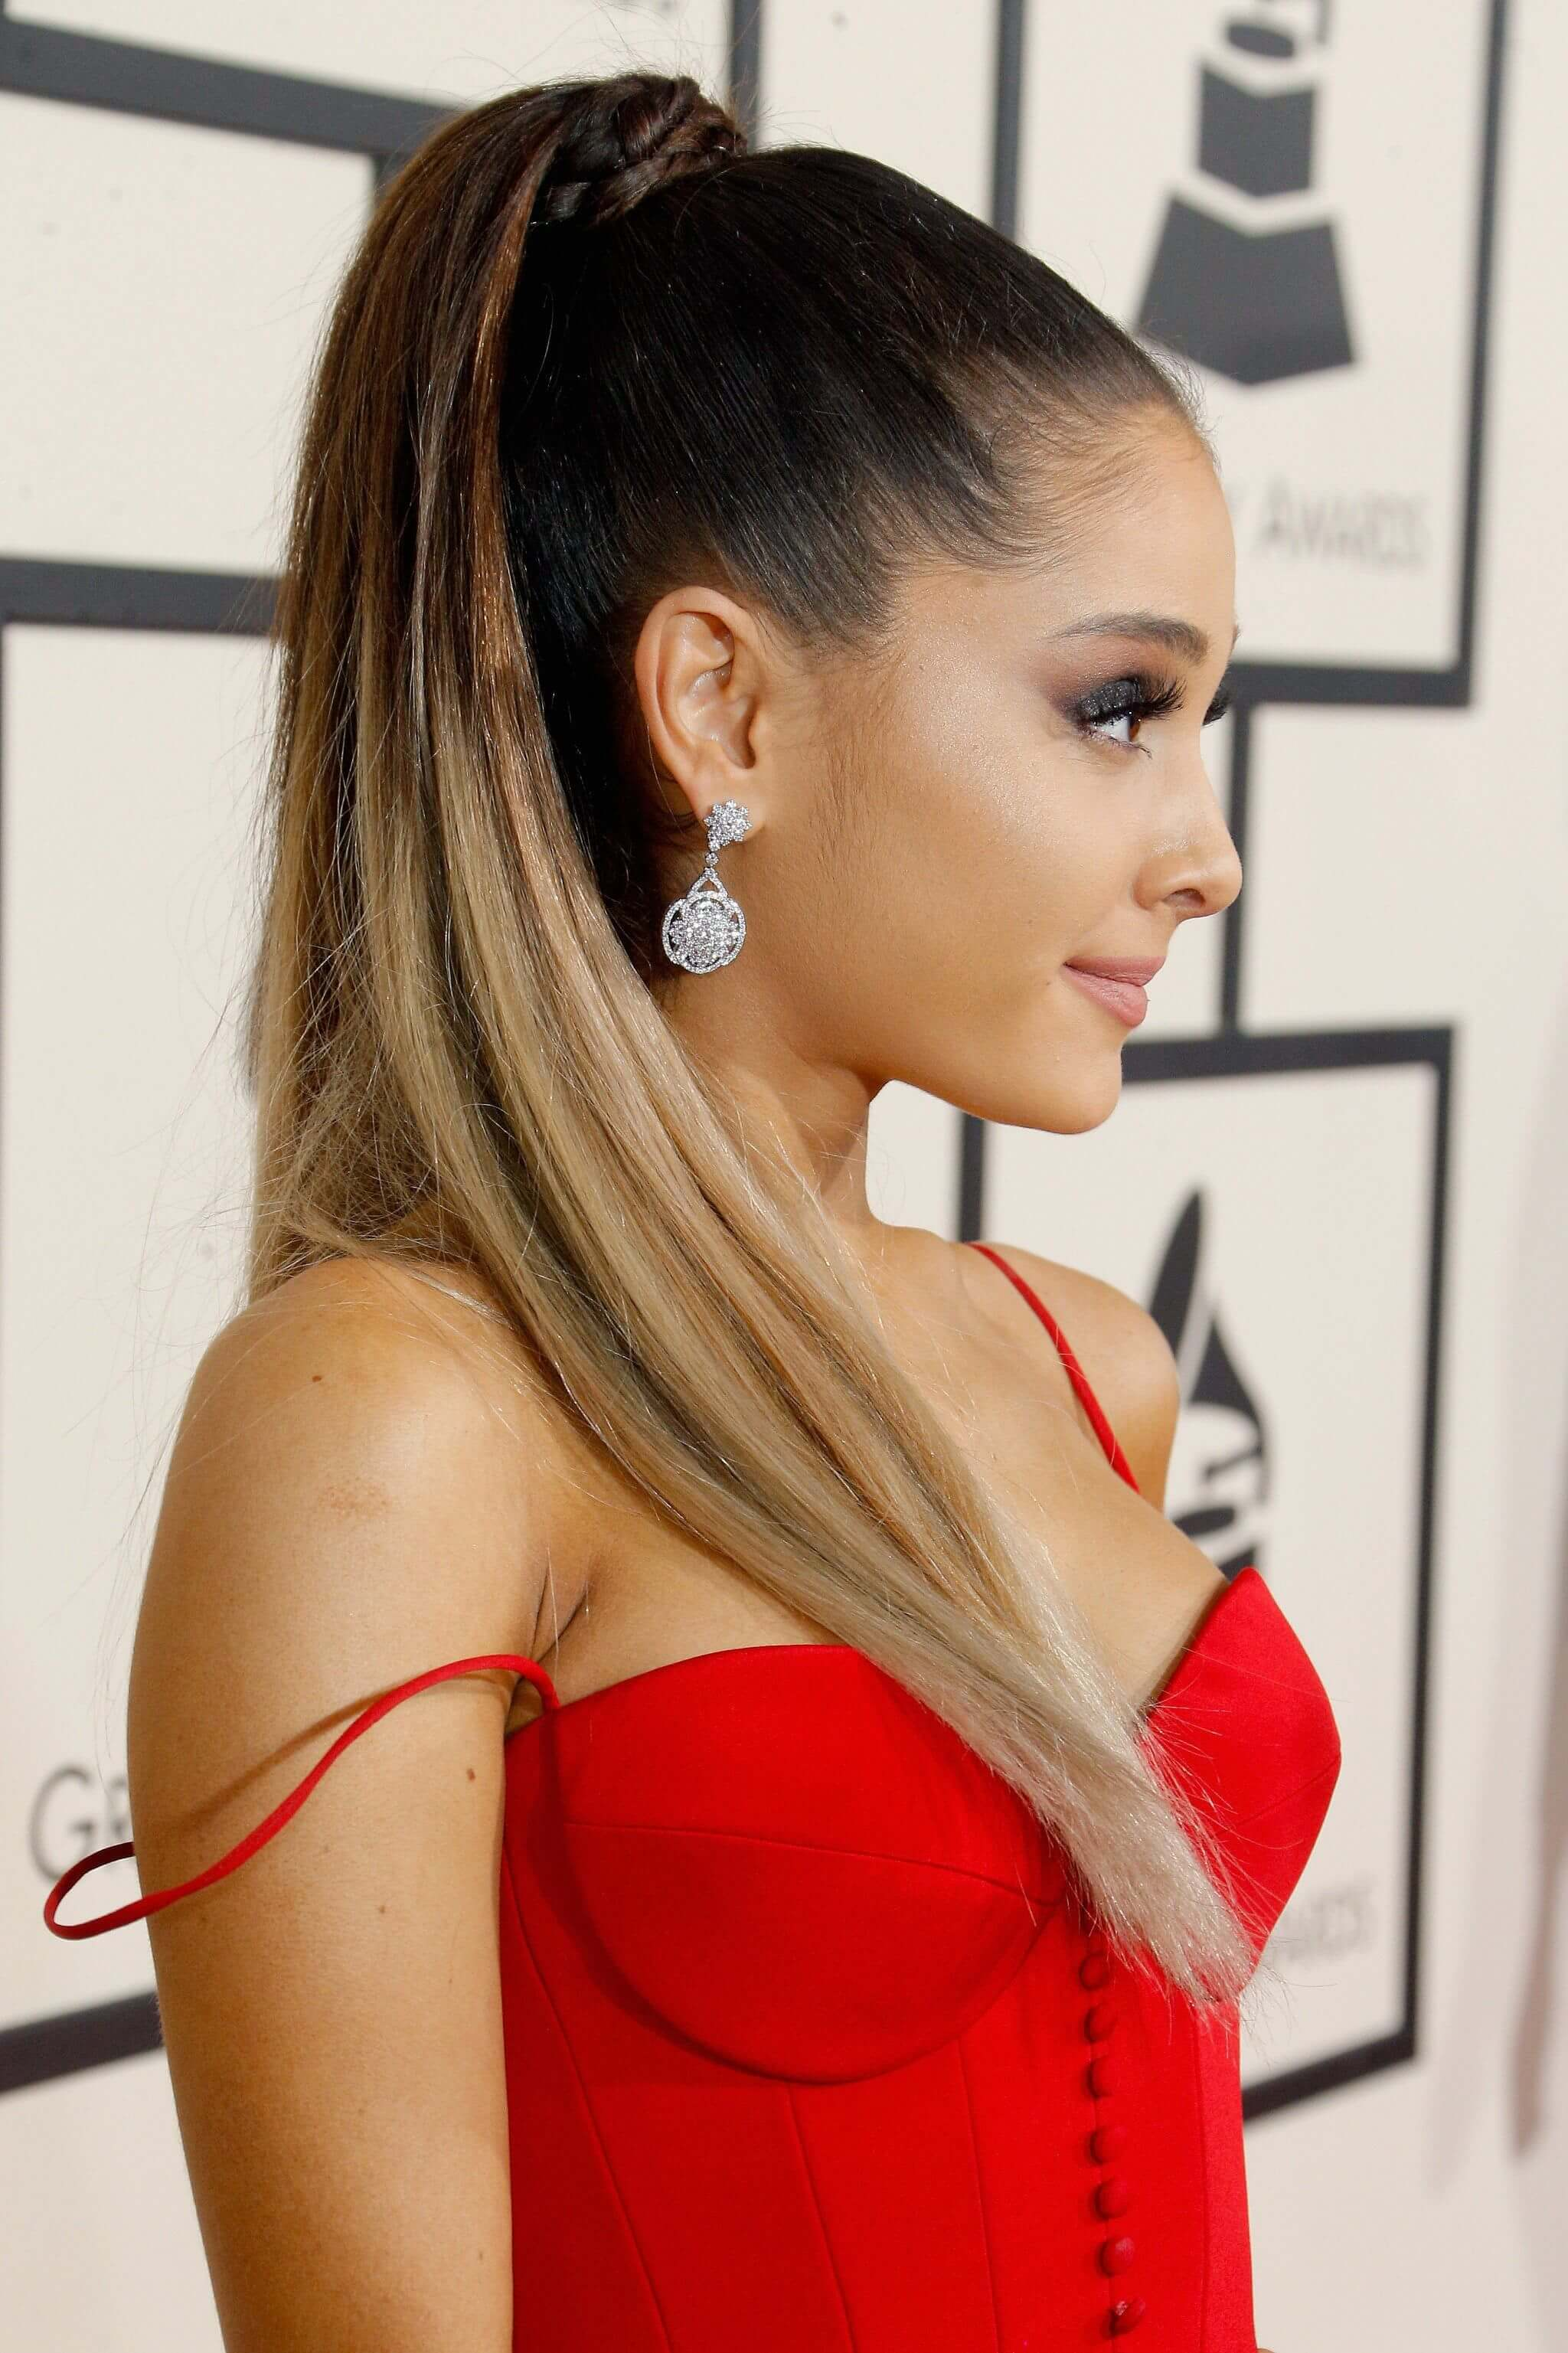 ariana-grande-too-hot